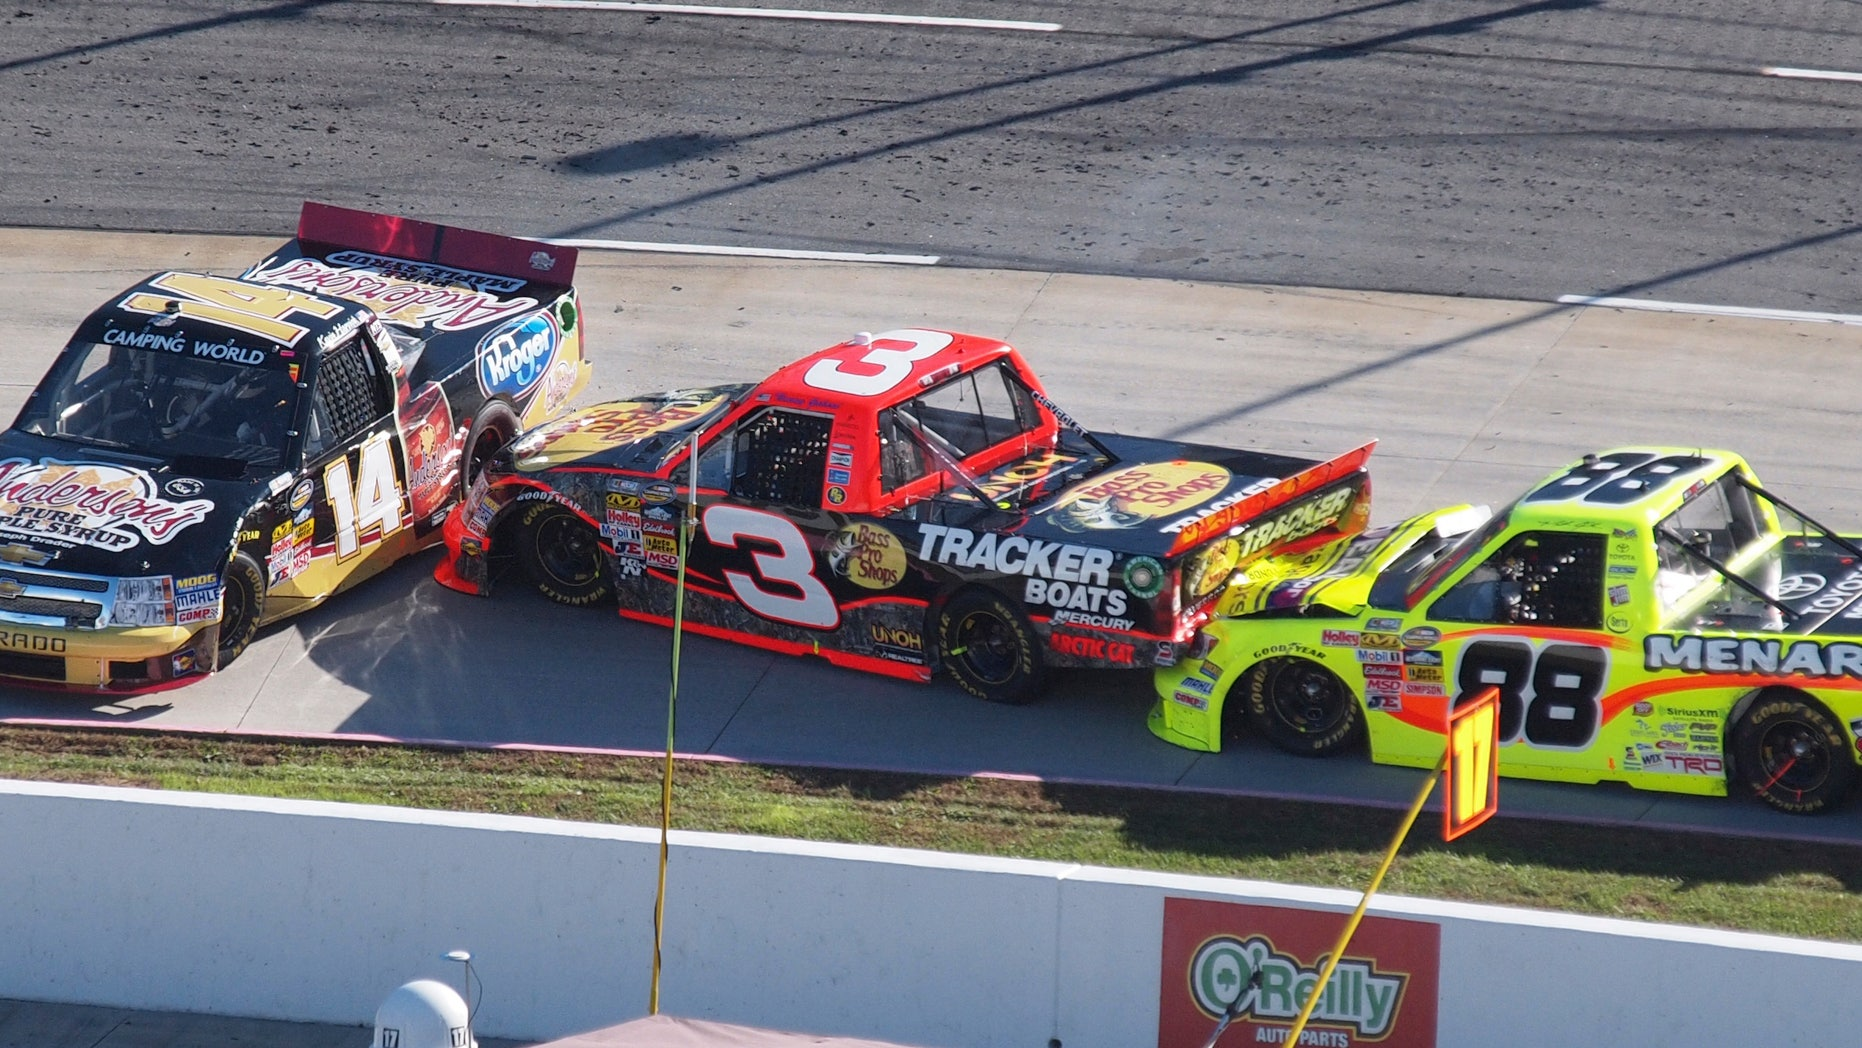 Kevin Harvick (14) spins out in front of Ty Dillon (3) and Matt Crafton (88) during the NASCAR Truck Series truck race at  Martinsville Speedway in Martinsville, Va., Saturday, Oct. 26, 2013. (AP Photo/Steve Sheppard)